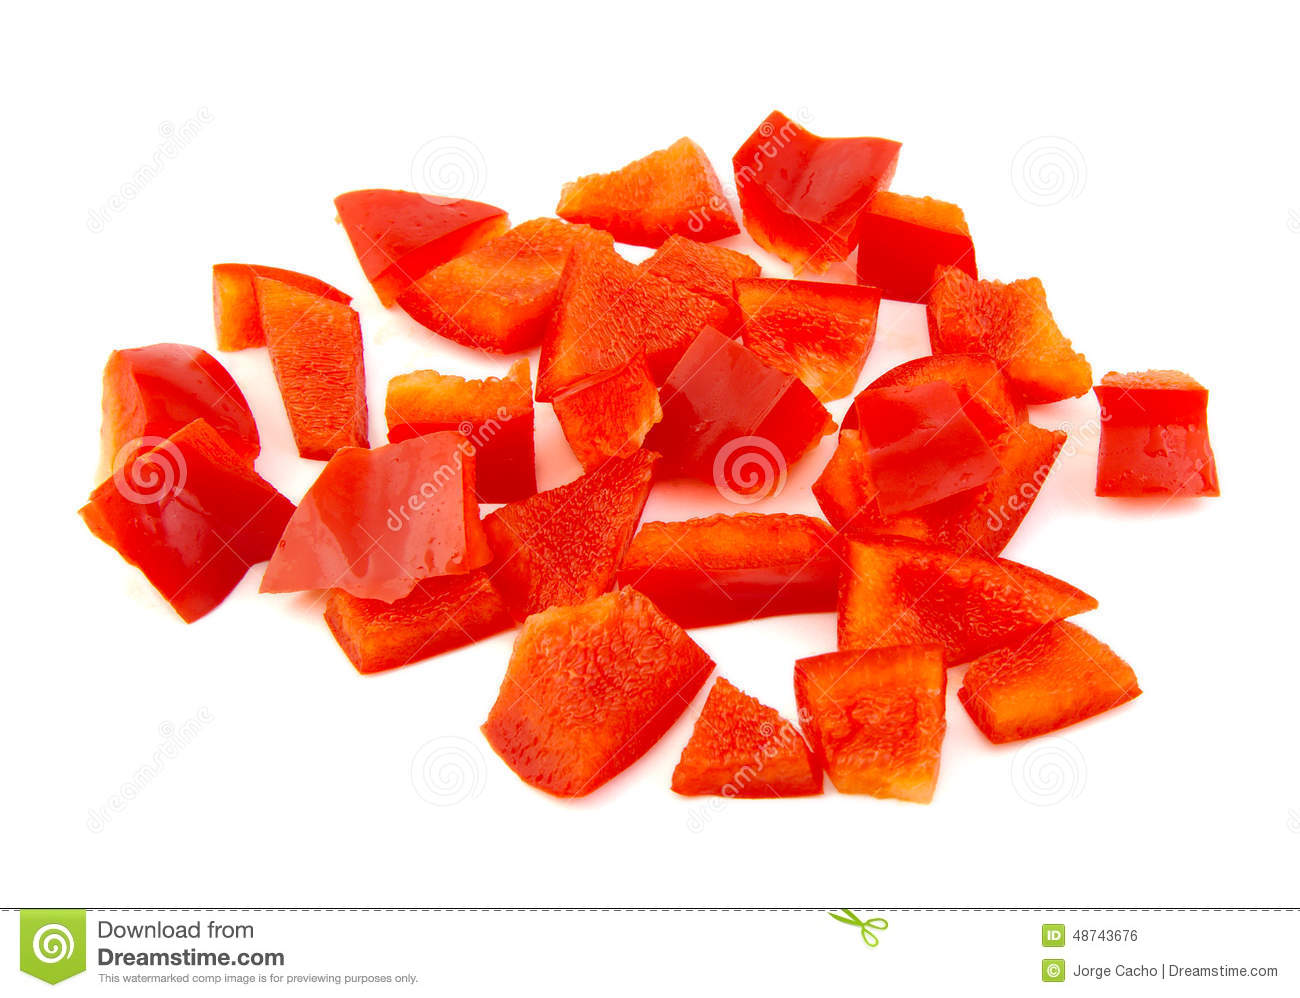 Chopped Red Pepper On White Background Stock Photo Watermelon Wallpaper Rainbow Find Free HD for Desktop [freshlhys.tk]